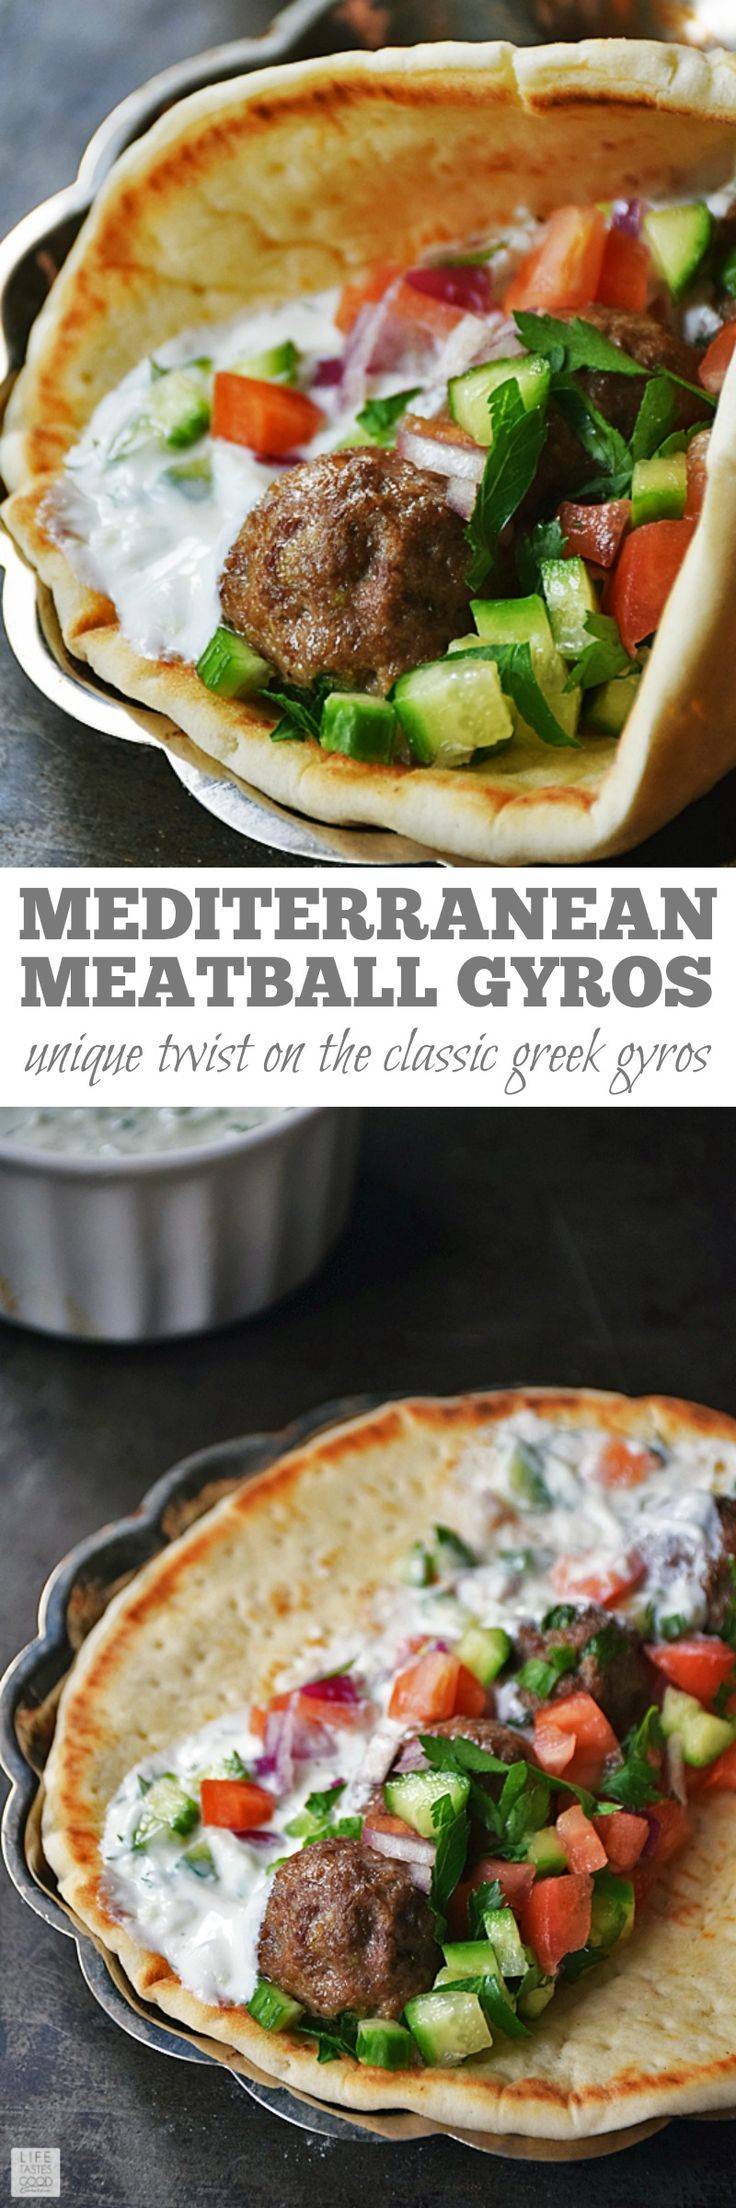 Mediterranean Meatball Gyros Sandwiches | by Life Tastes Good are full of flavor and very satisfying! Using simple flavors often found in Greek cuisine, this unique recipe puts a twist on a traditional gyros recipe. Makes a tasty dinner or appetizer recipe for parties too! #LTGrecipes #Meatballs #SandwichRecipes #GreekFood #Gyros